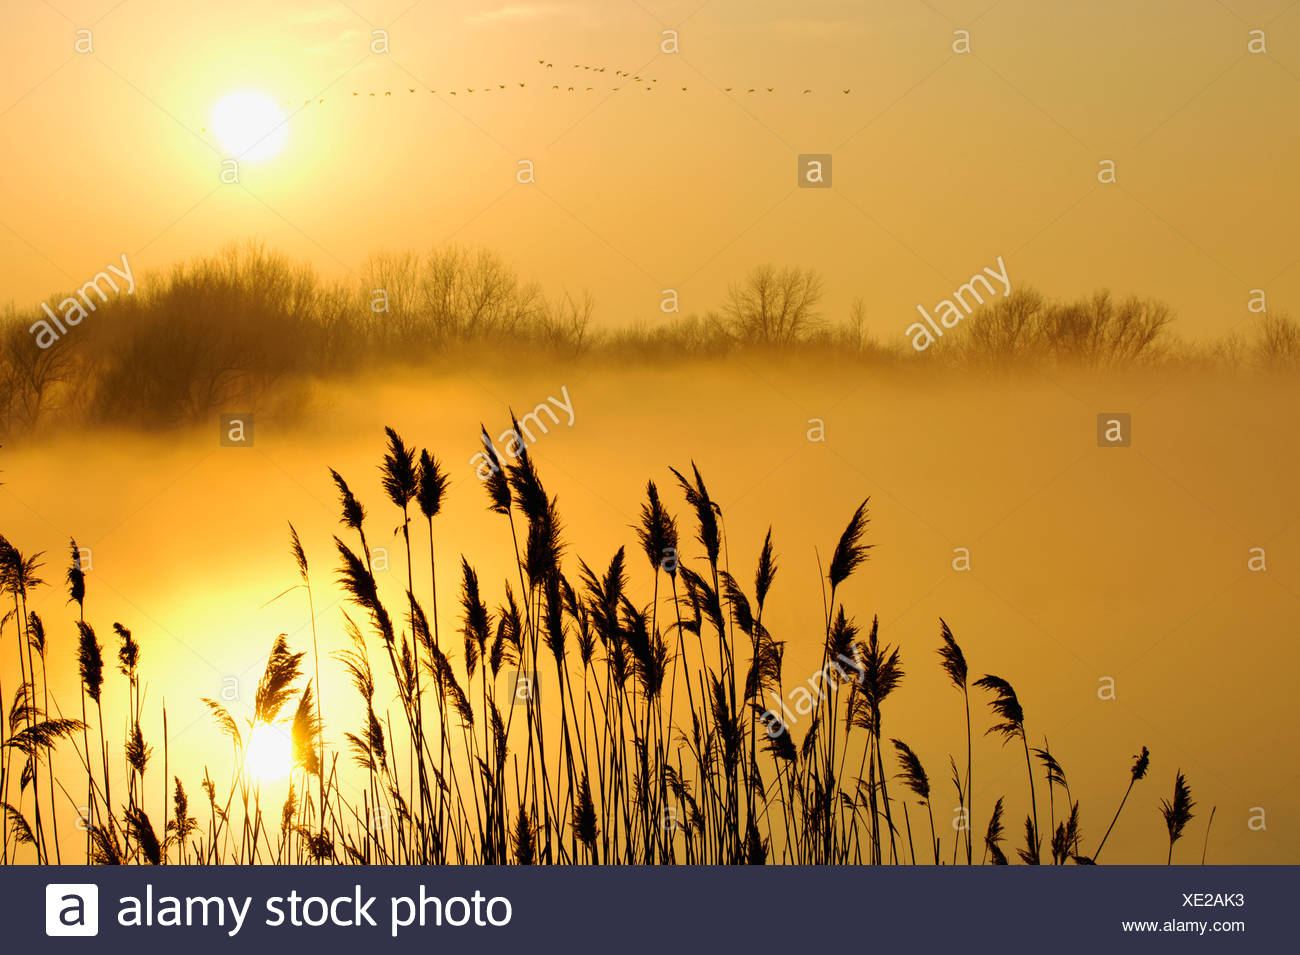 Canada Geese In Flight At Sunrise; Pointe-Des-Cascades Quebec Canada - Stock Image